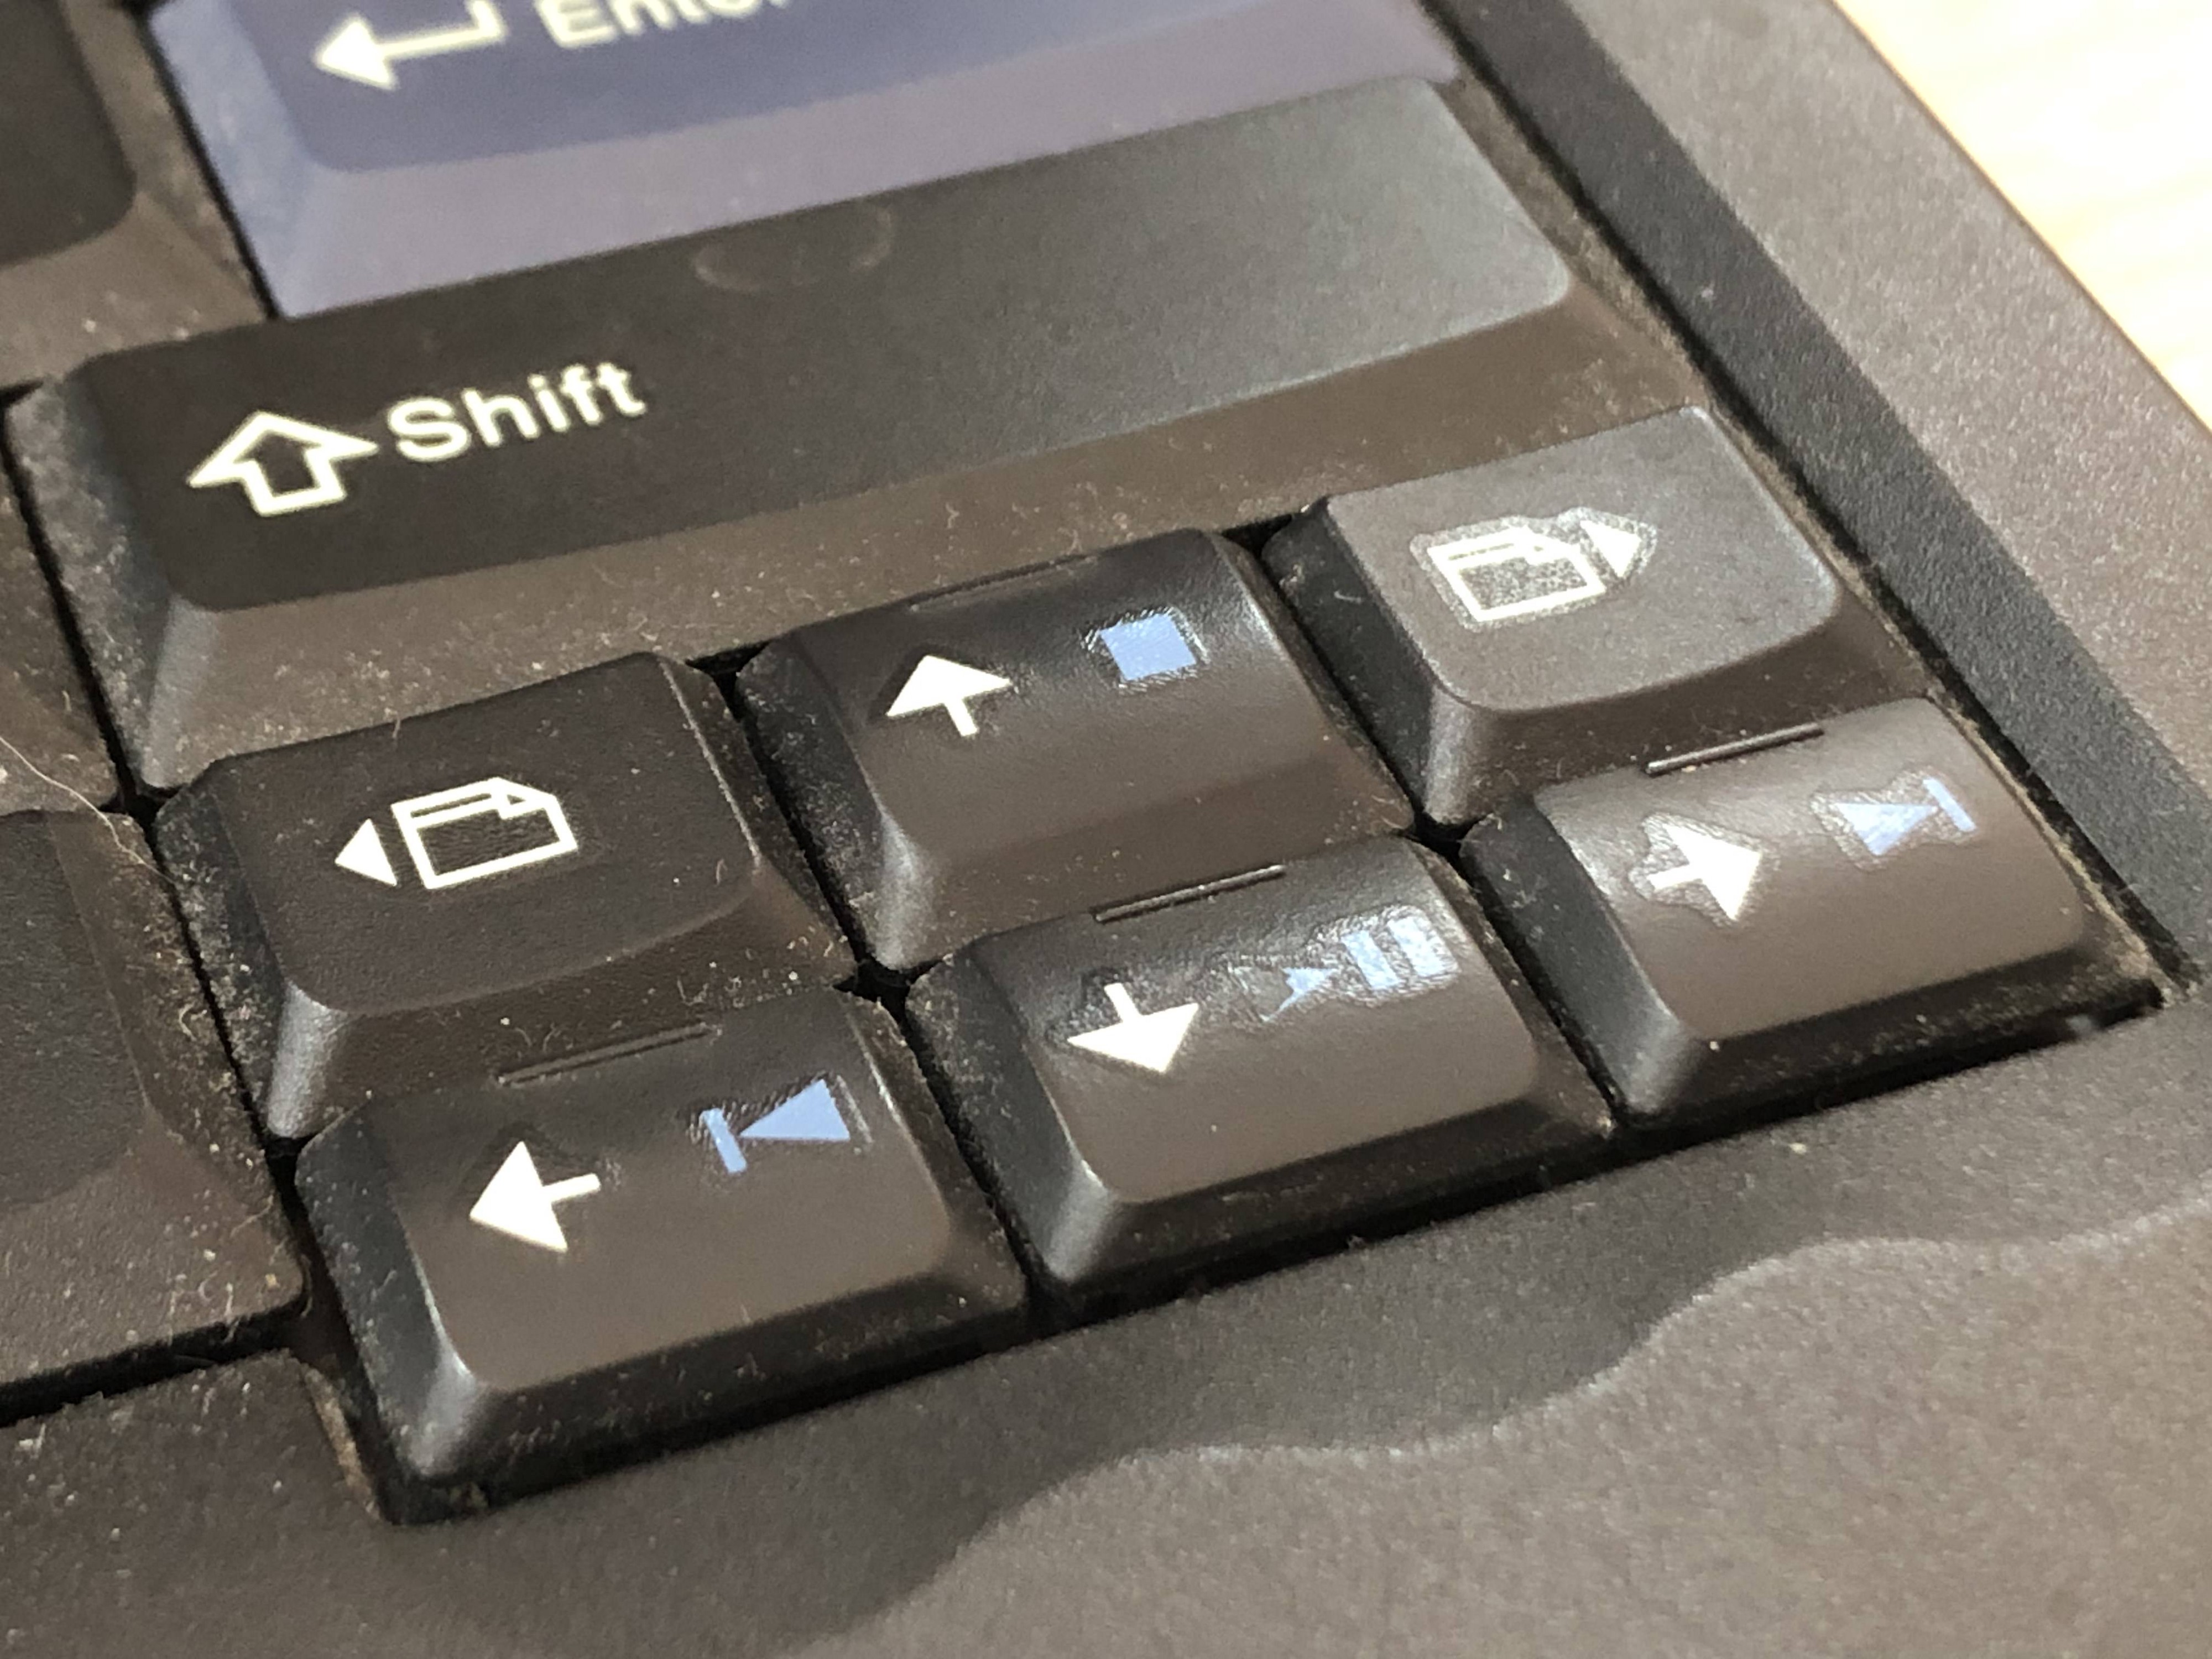 Remap page back / page forward keys on a Thinkpad keyboard